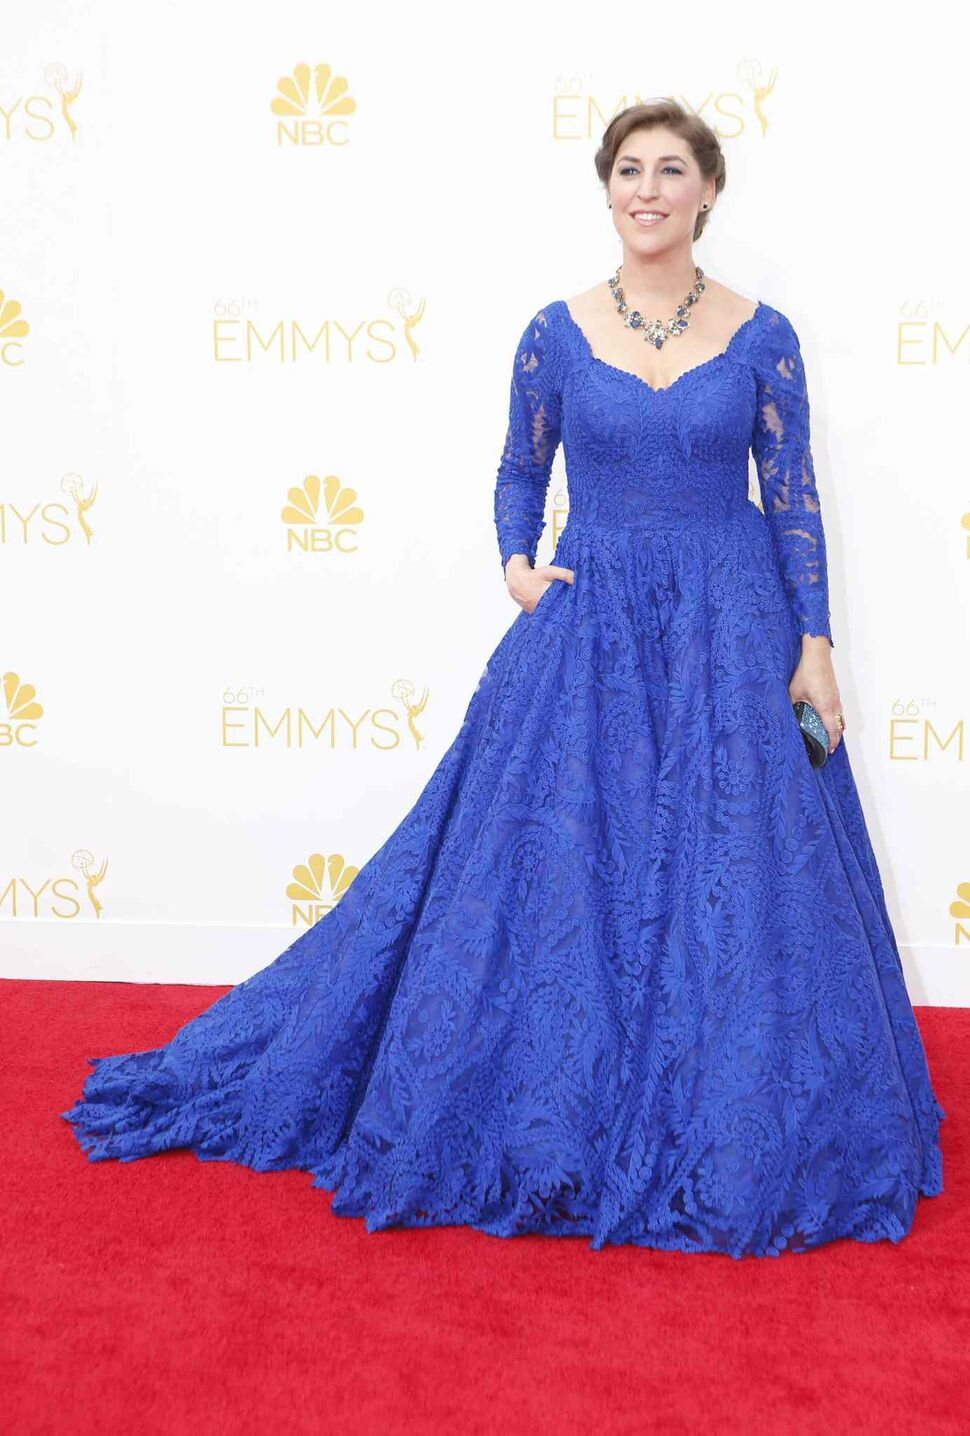 Mayim Bialik (The Big Bang Theory) arrives for the 66th Annual Primetime Emmy Awards at Nokia Theatre at L.A. Live in Los Angeles Monday. (Tribune Media MCT)